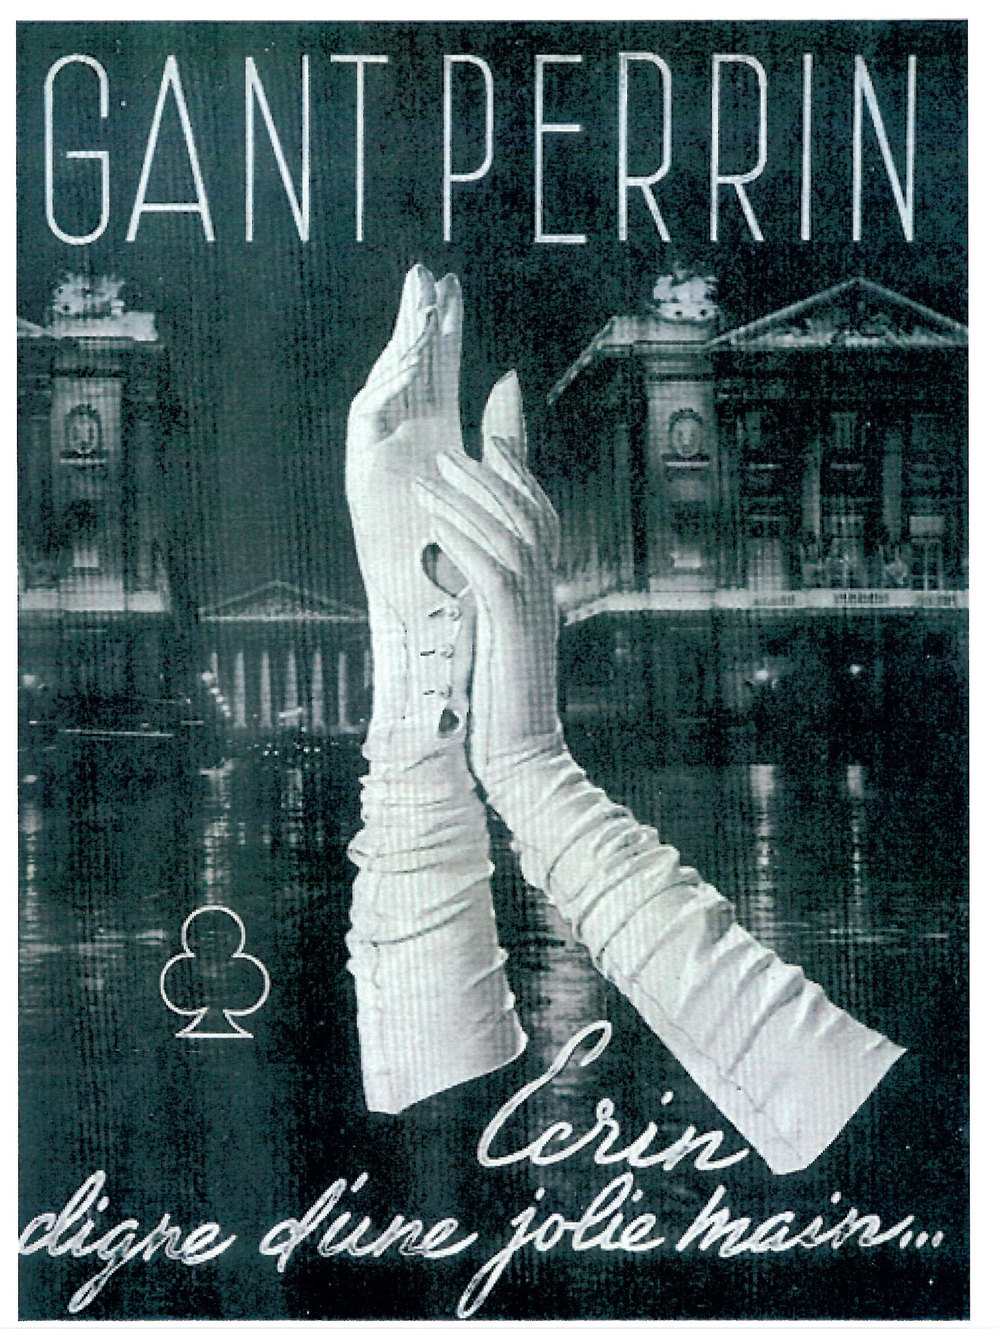 A vintage advertisement from Perrin Paris. (Photo: Courtesy Perrin Paris)